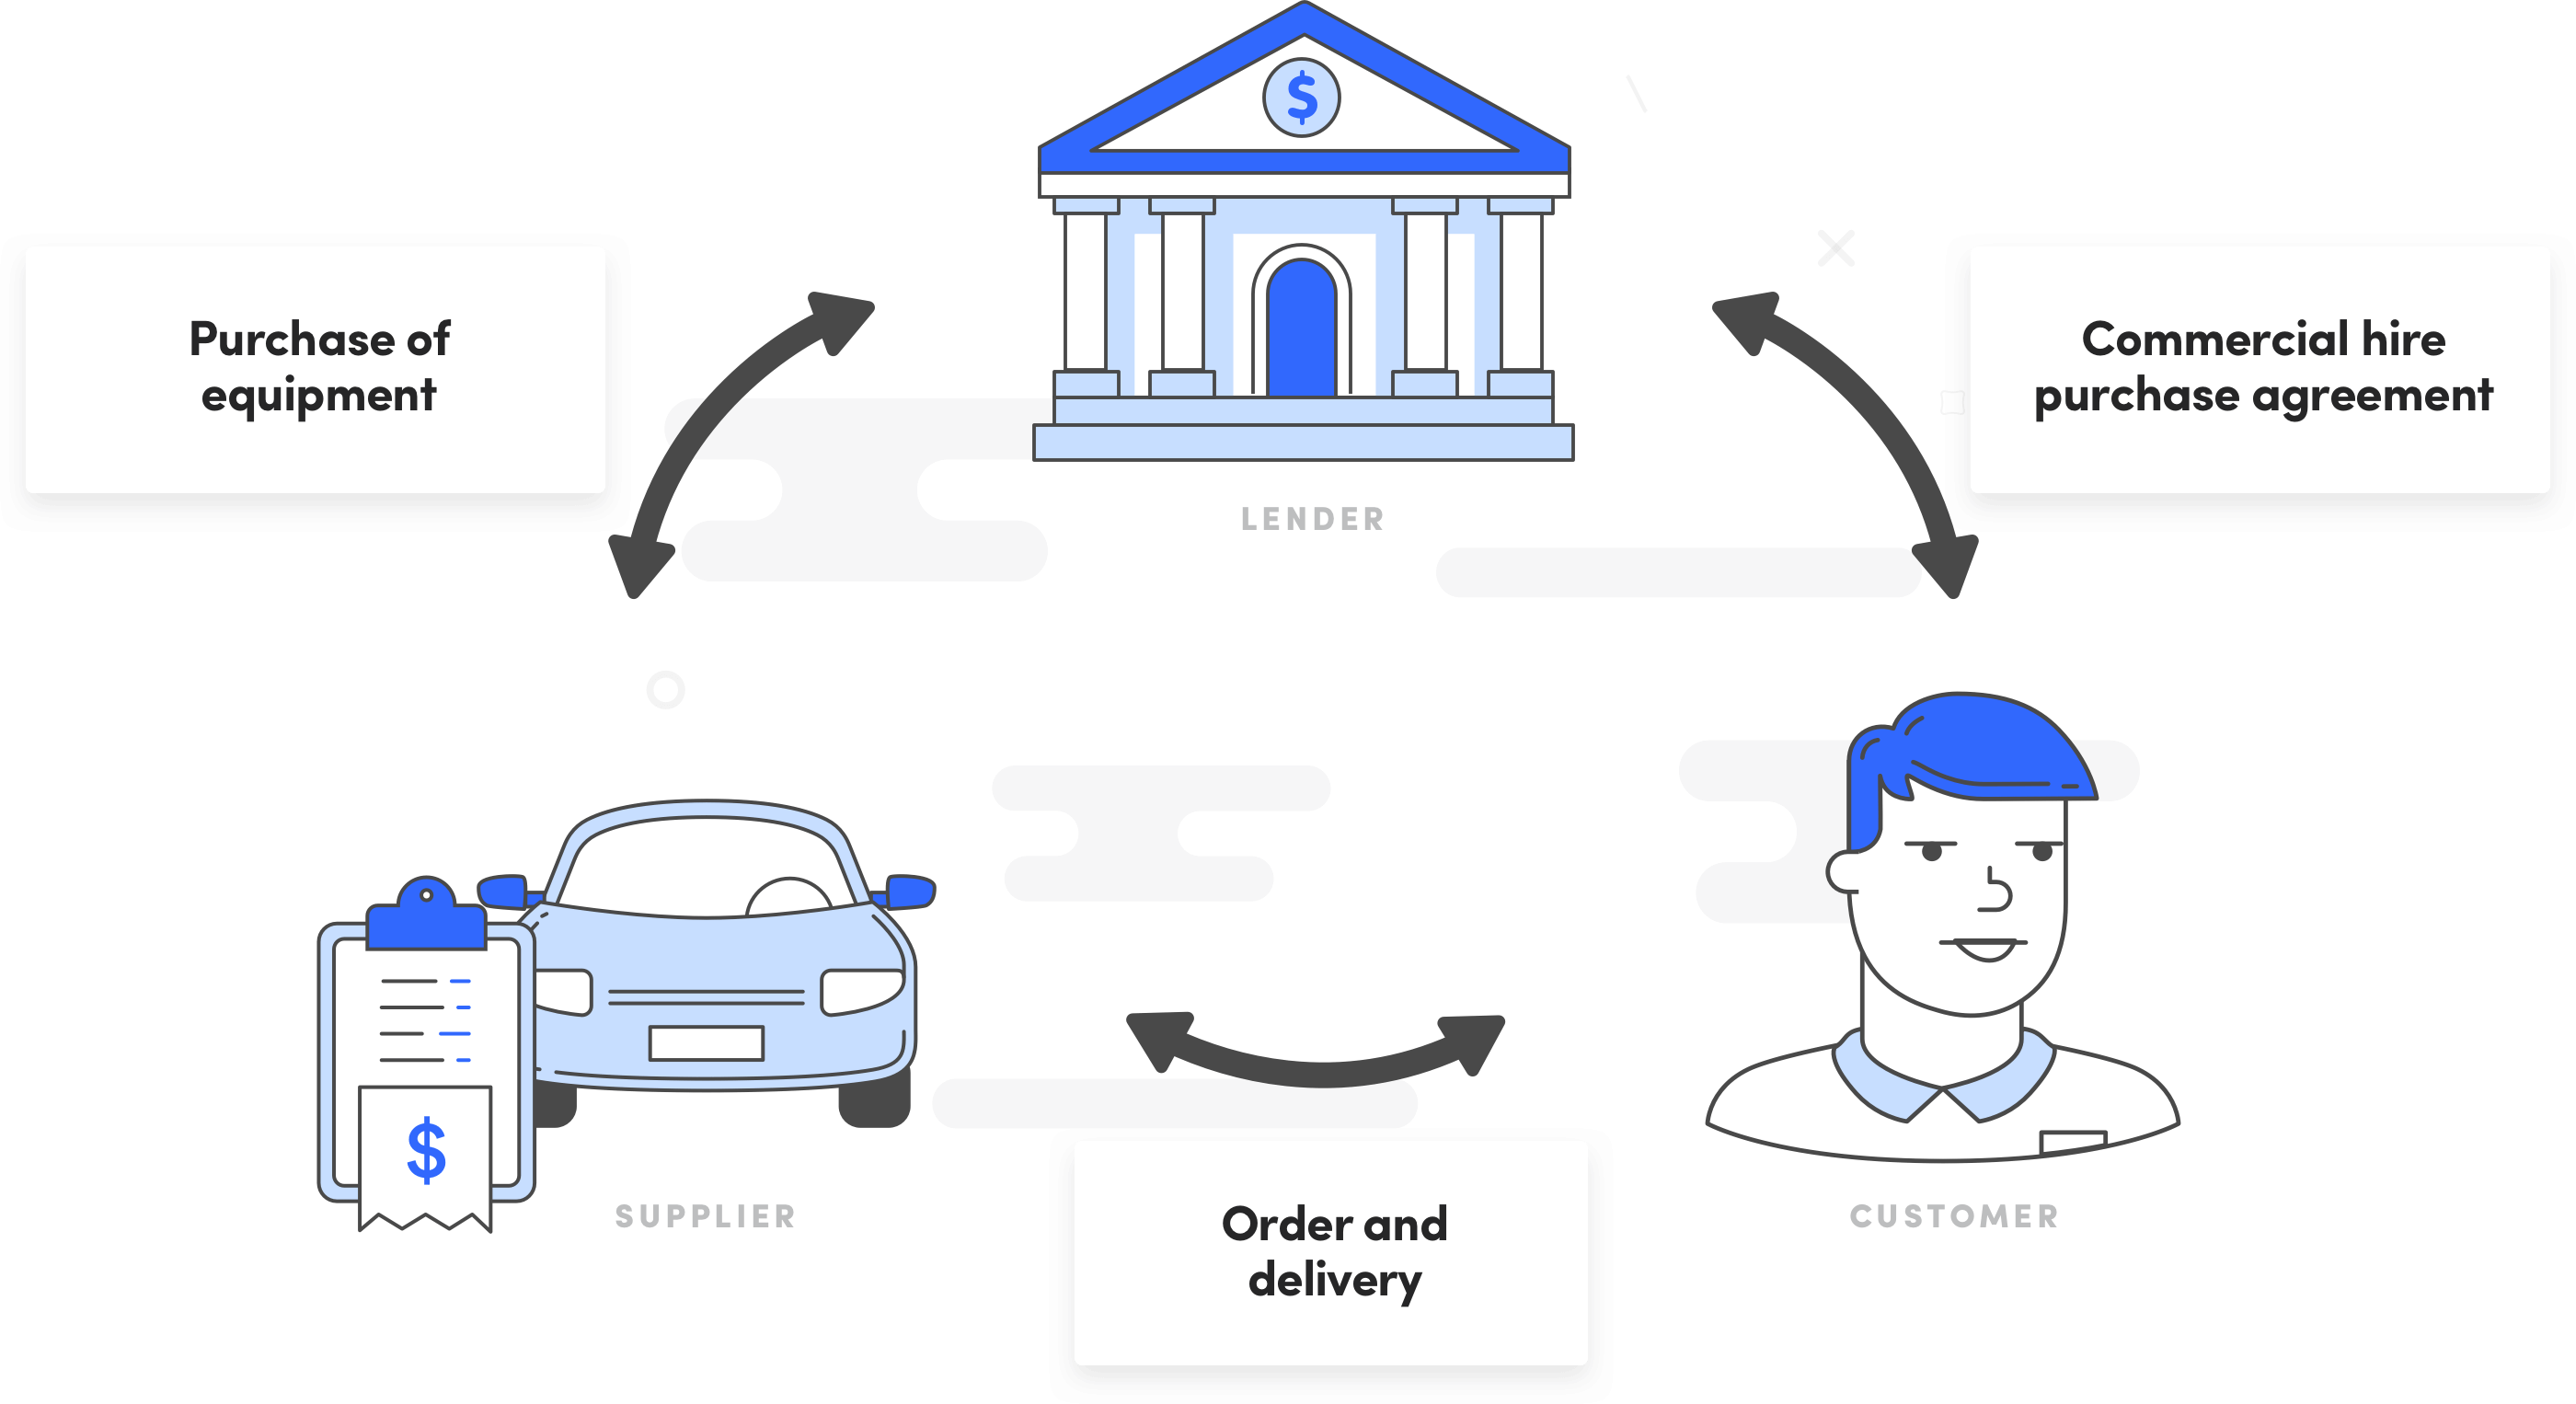 How does a commercial hire purchase work? - Diagram